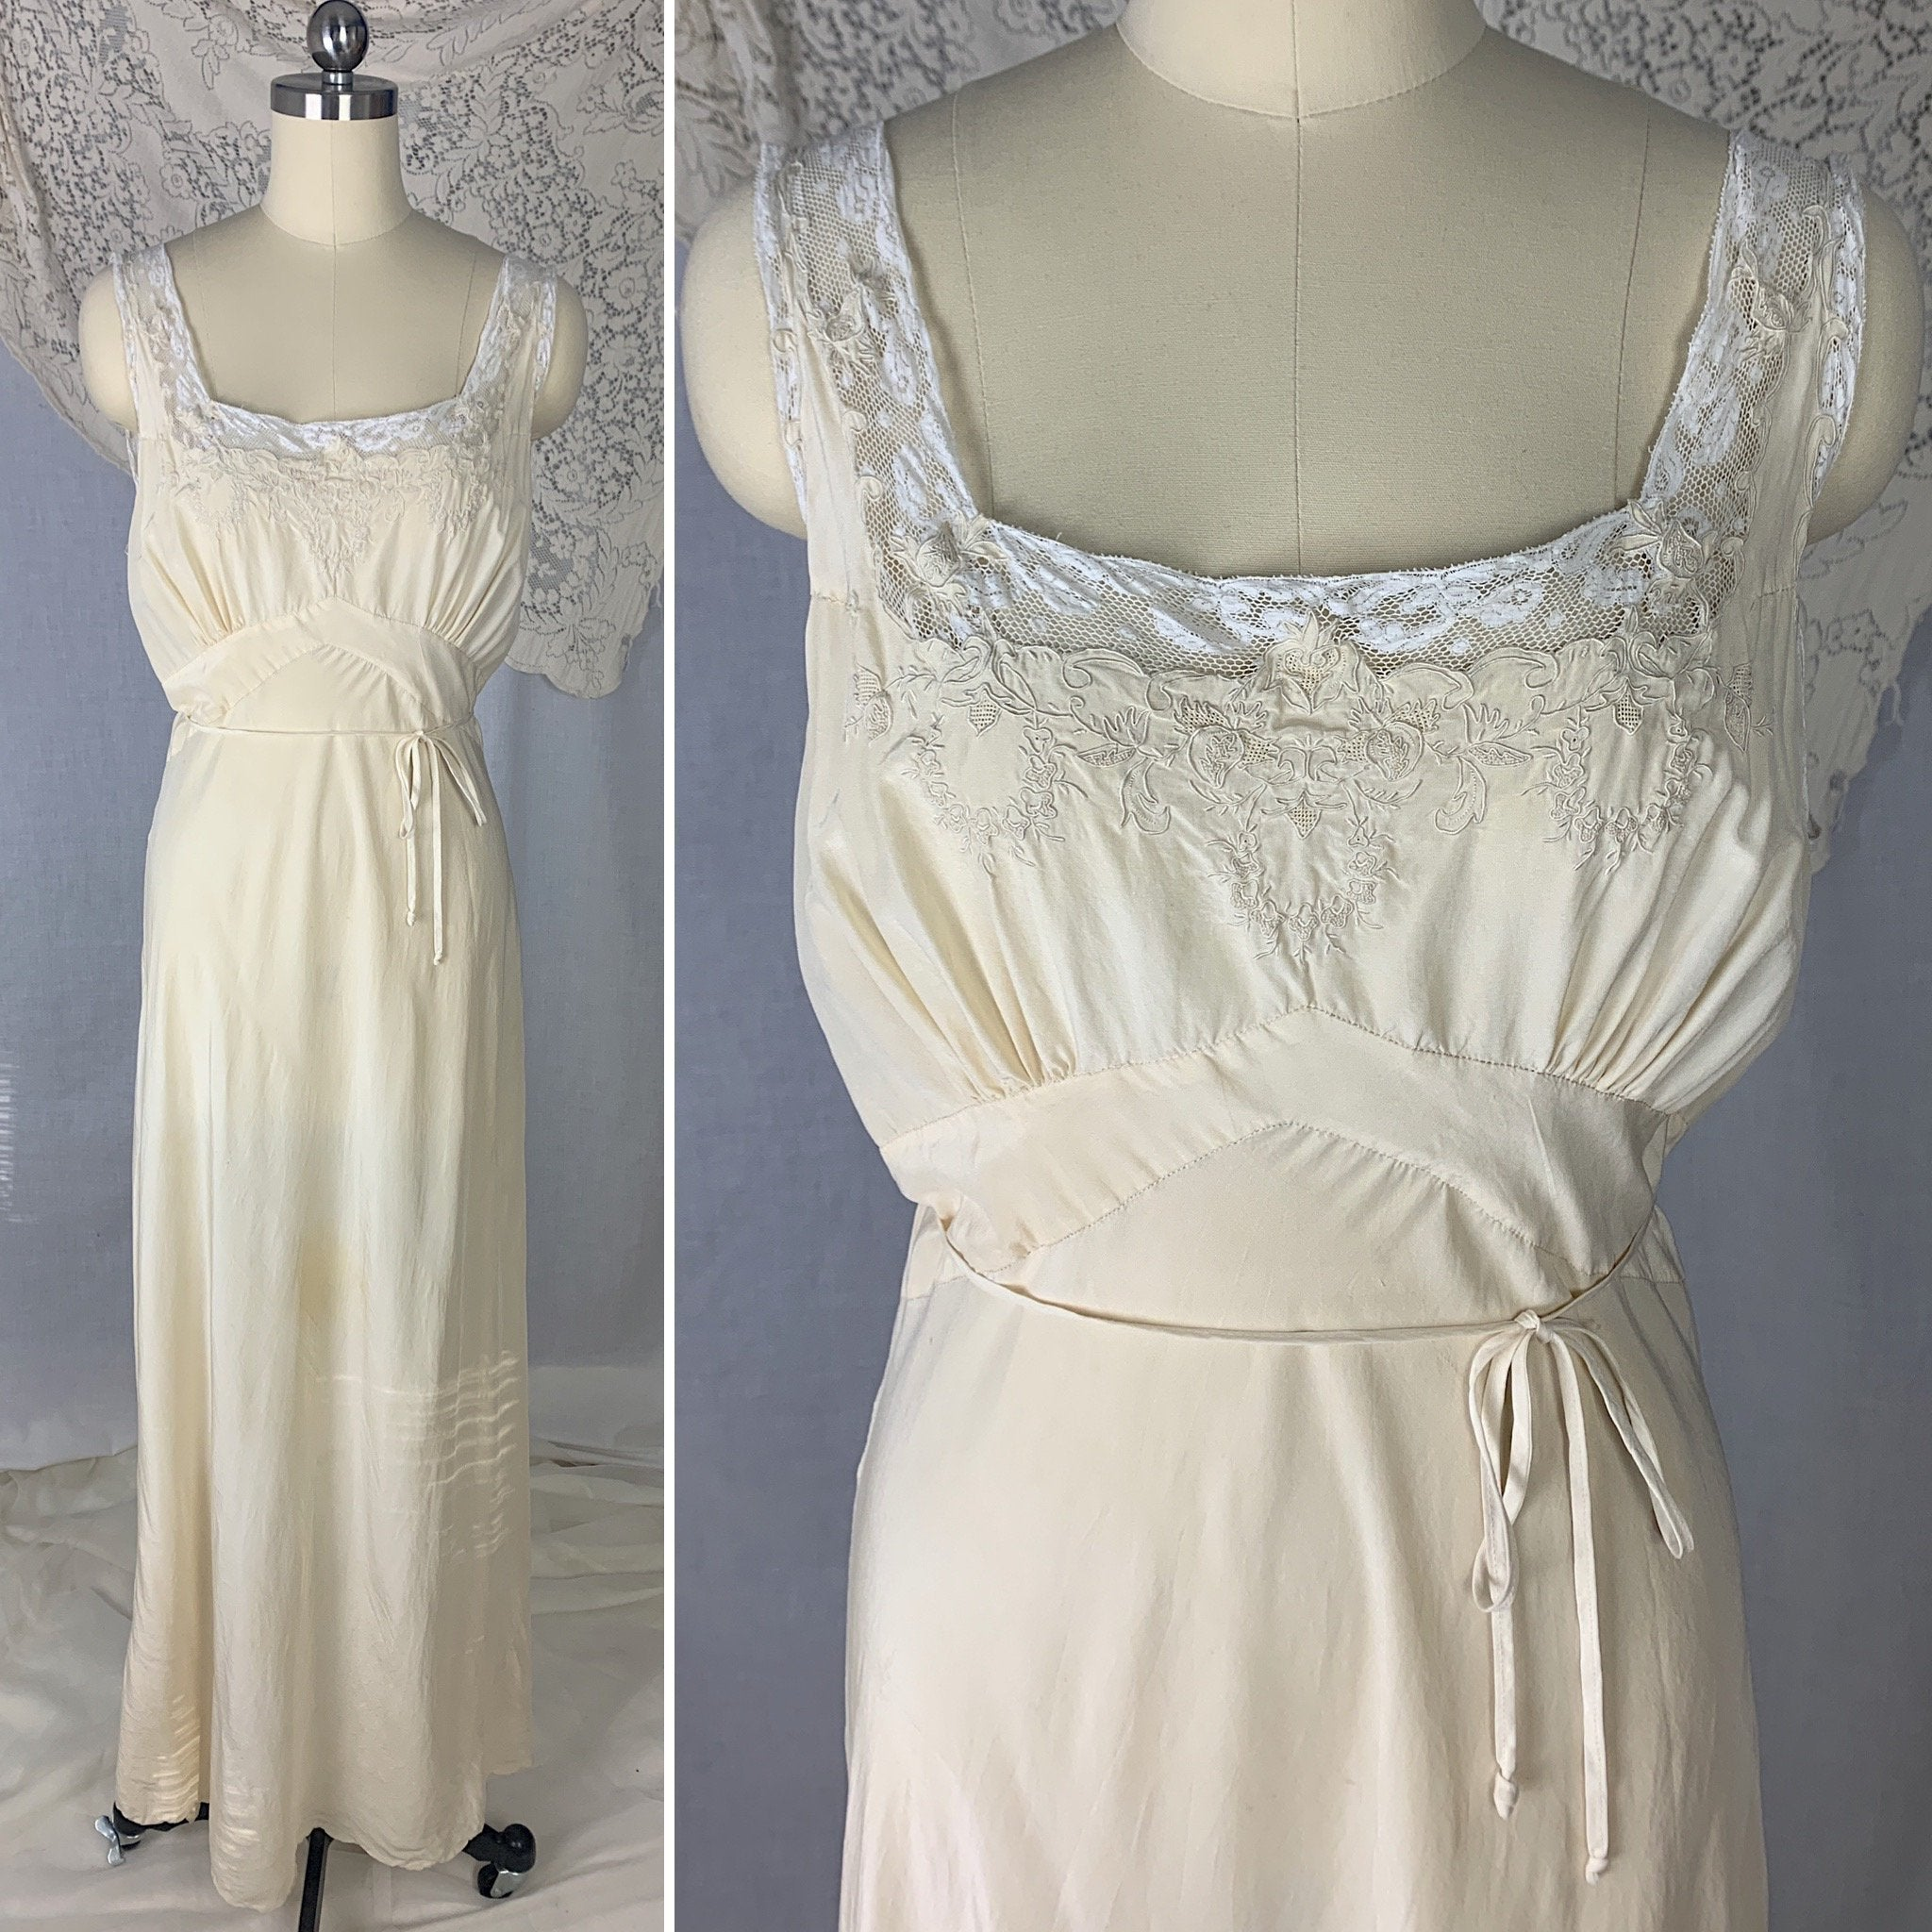 Vintage 1930's Nightgown | Buttermilk Silk with White lace & Floral Wreath Embroidery | Size S, M | Made in China - Daggers & Dames